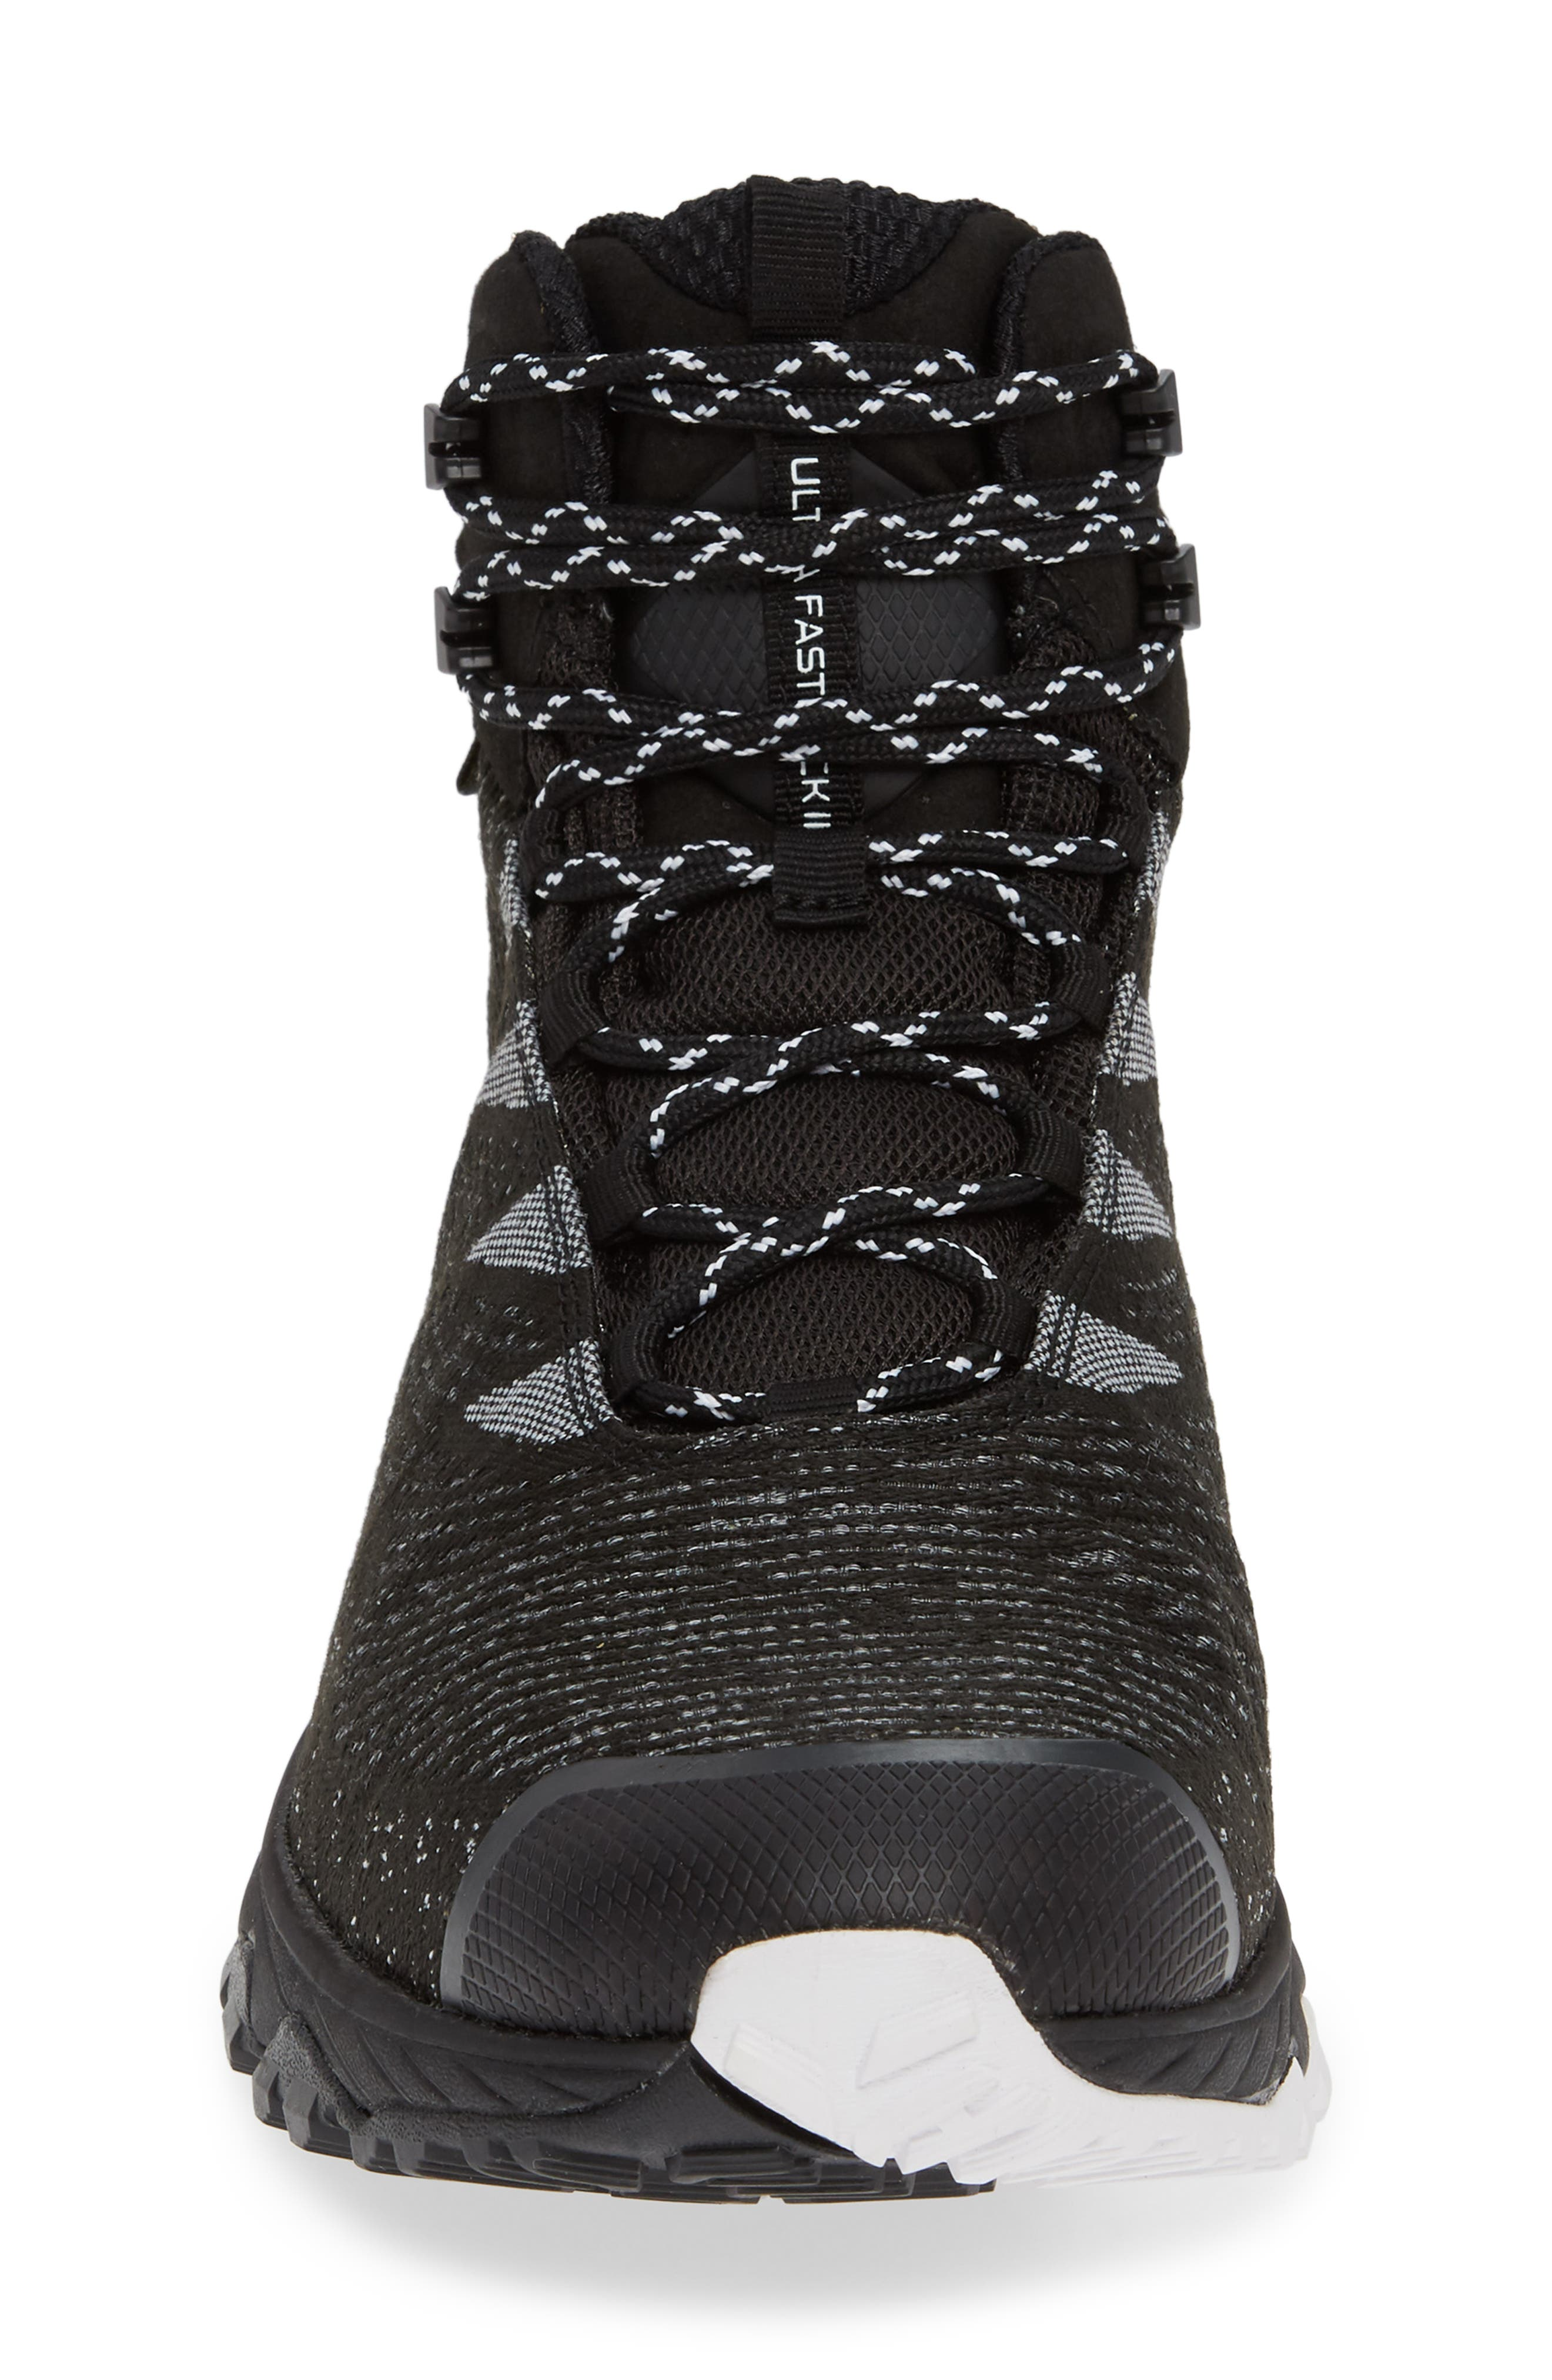 THE NORTH FACE, Ultra Fastpack III Mid Gore-Tex<sup>®</sup> Hiking Boot, Alternate thumbnail 4, color, BLACK/ WHITE